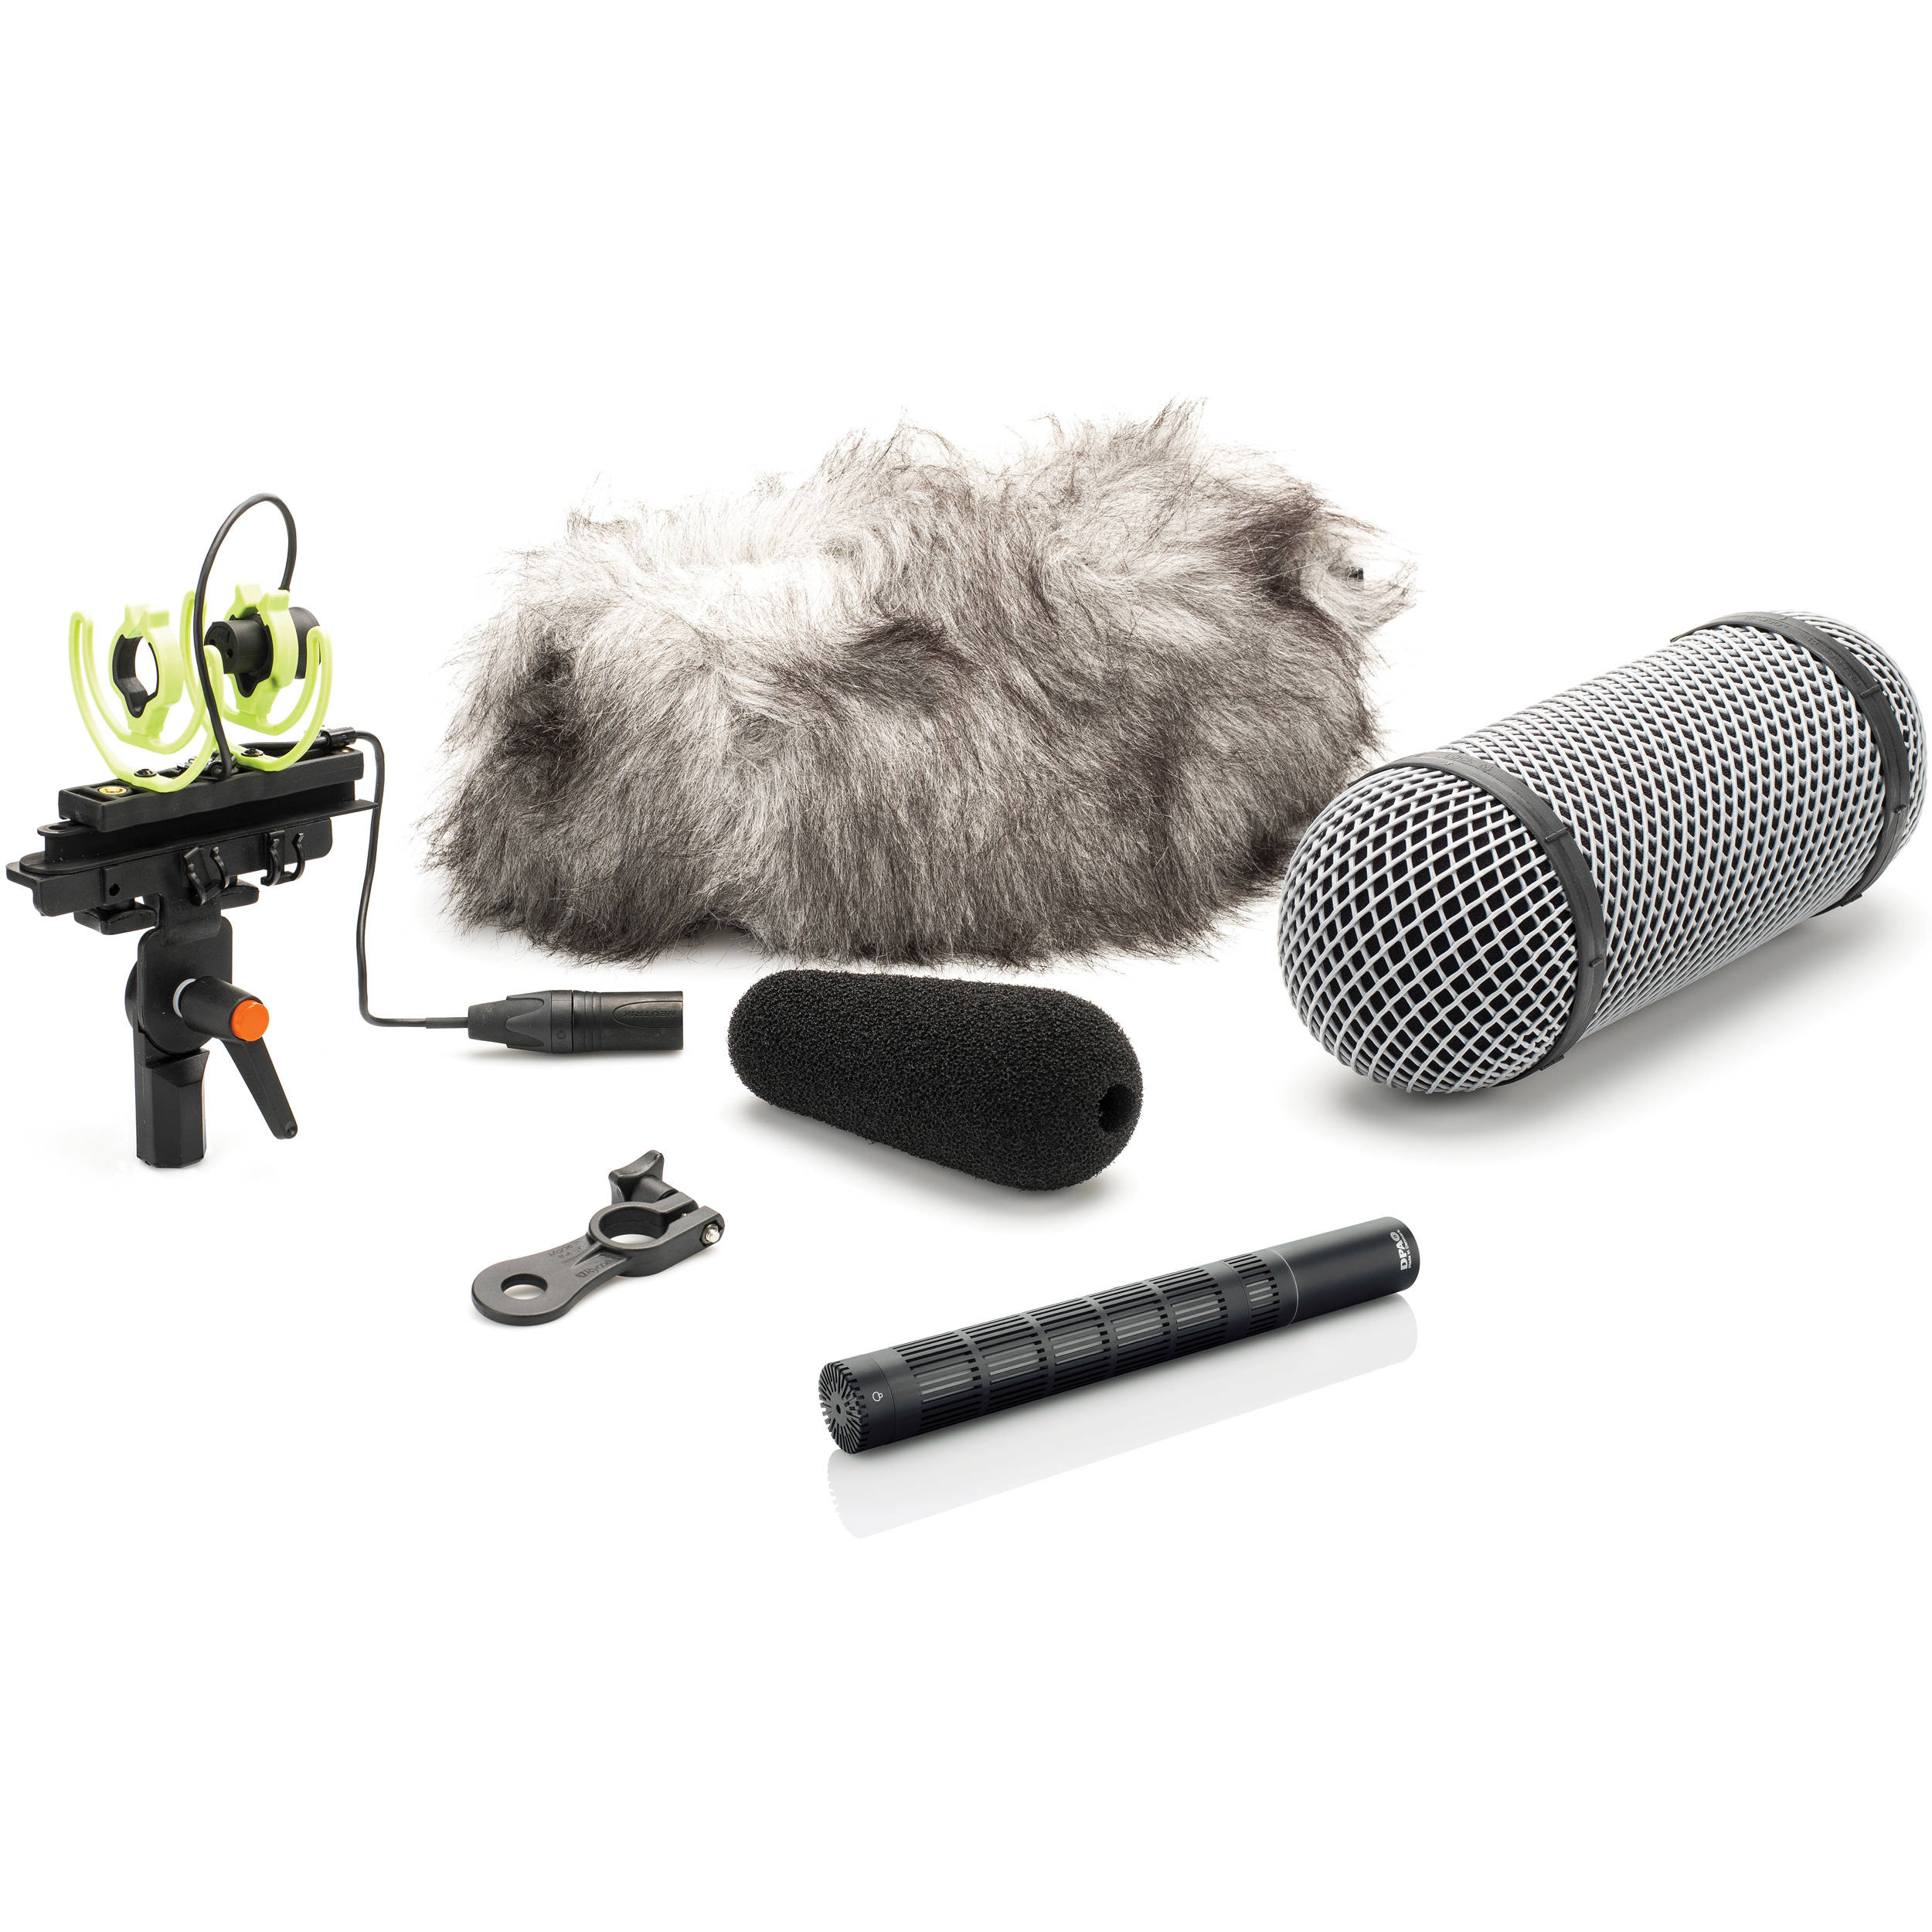 DPA Microphones 4017C-R Compact Shotgun Microphone with MMP-C Preamp and Rycote Windshield Kit